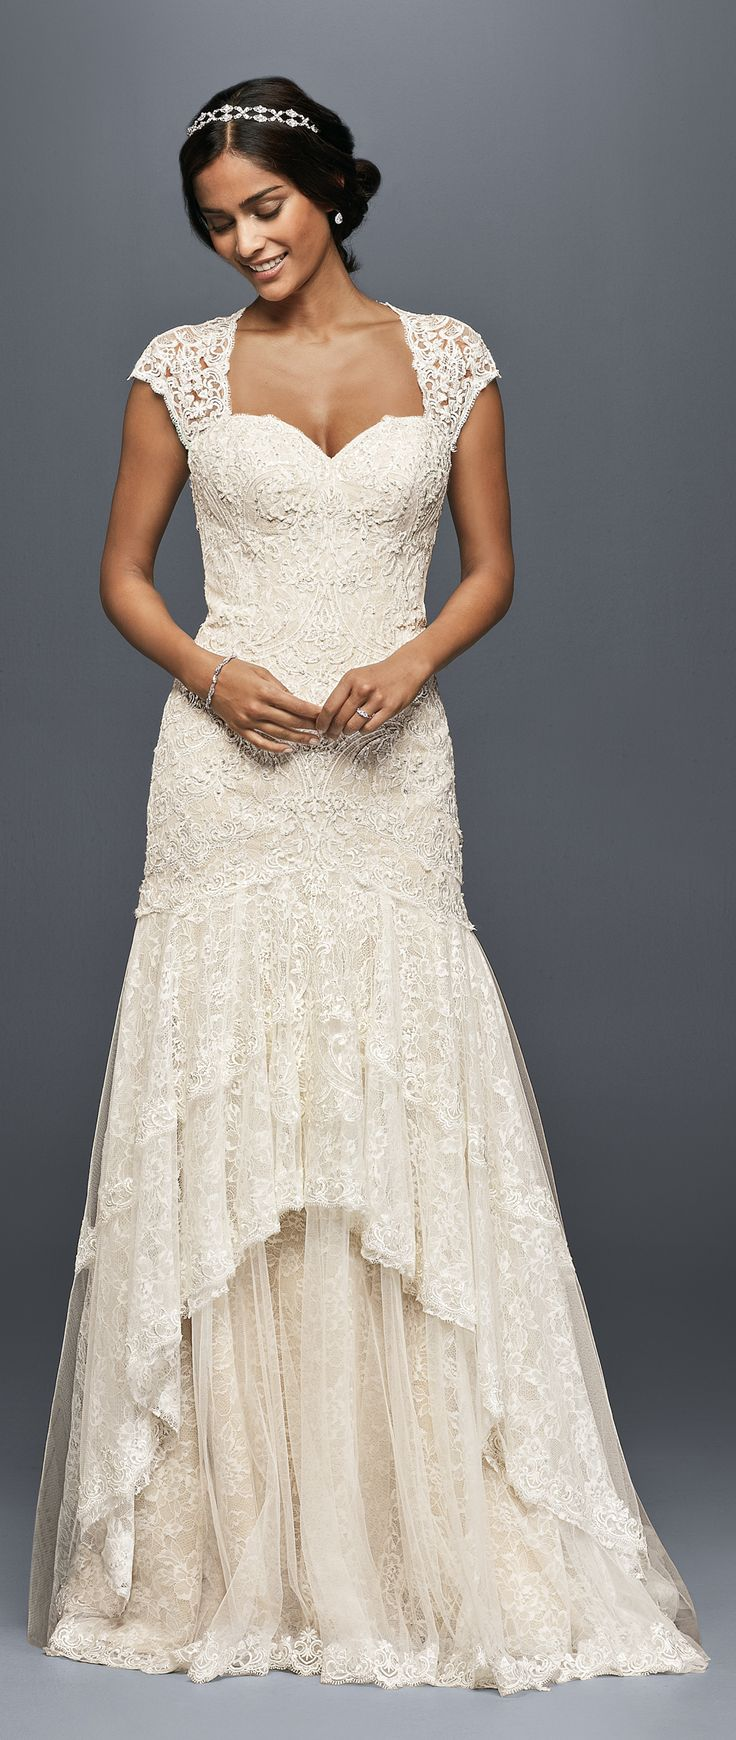 Tiered Lace Mermaid Wedding Dress with Beading | David's Bridal Spring 2017 | #davidsbridal #ad